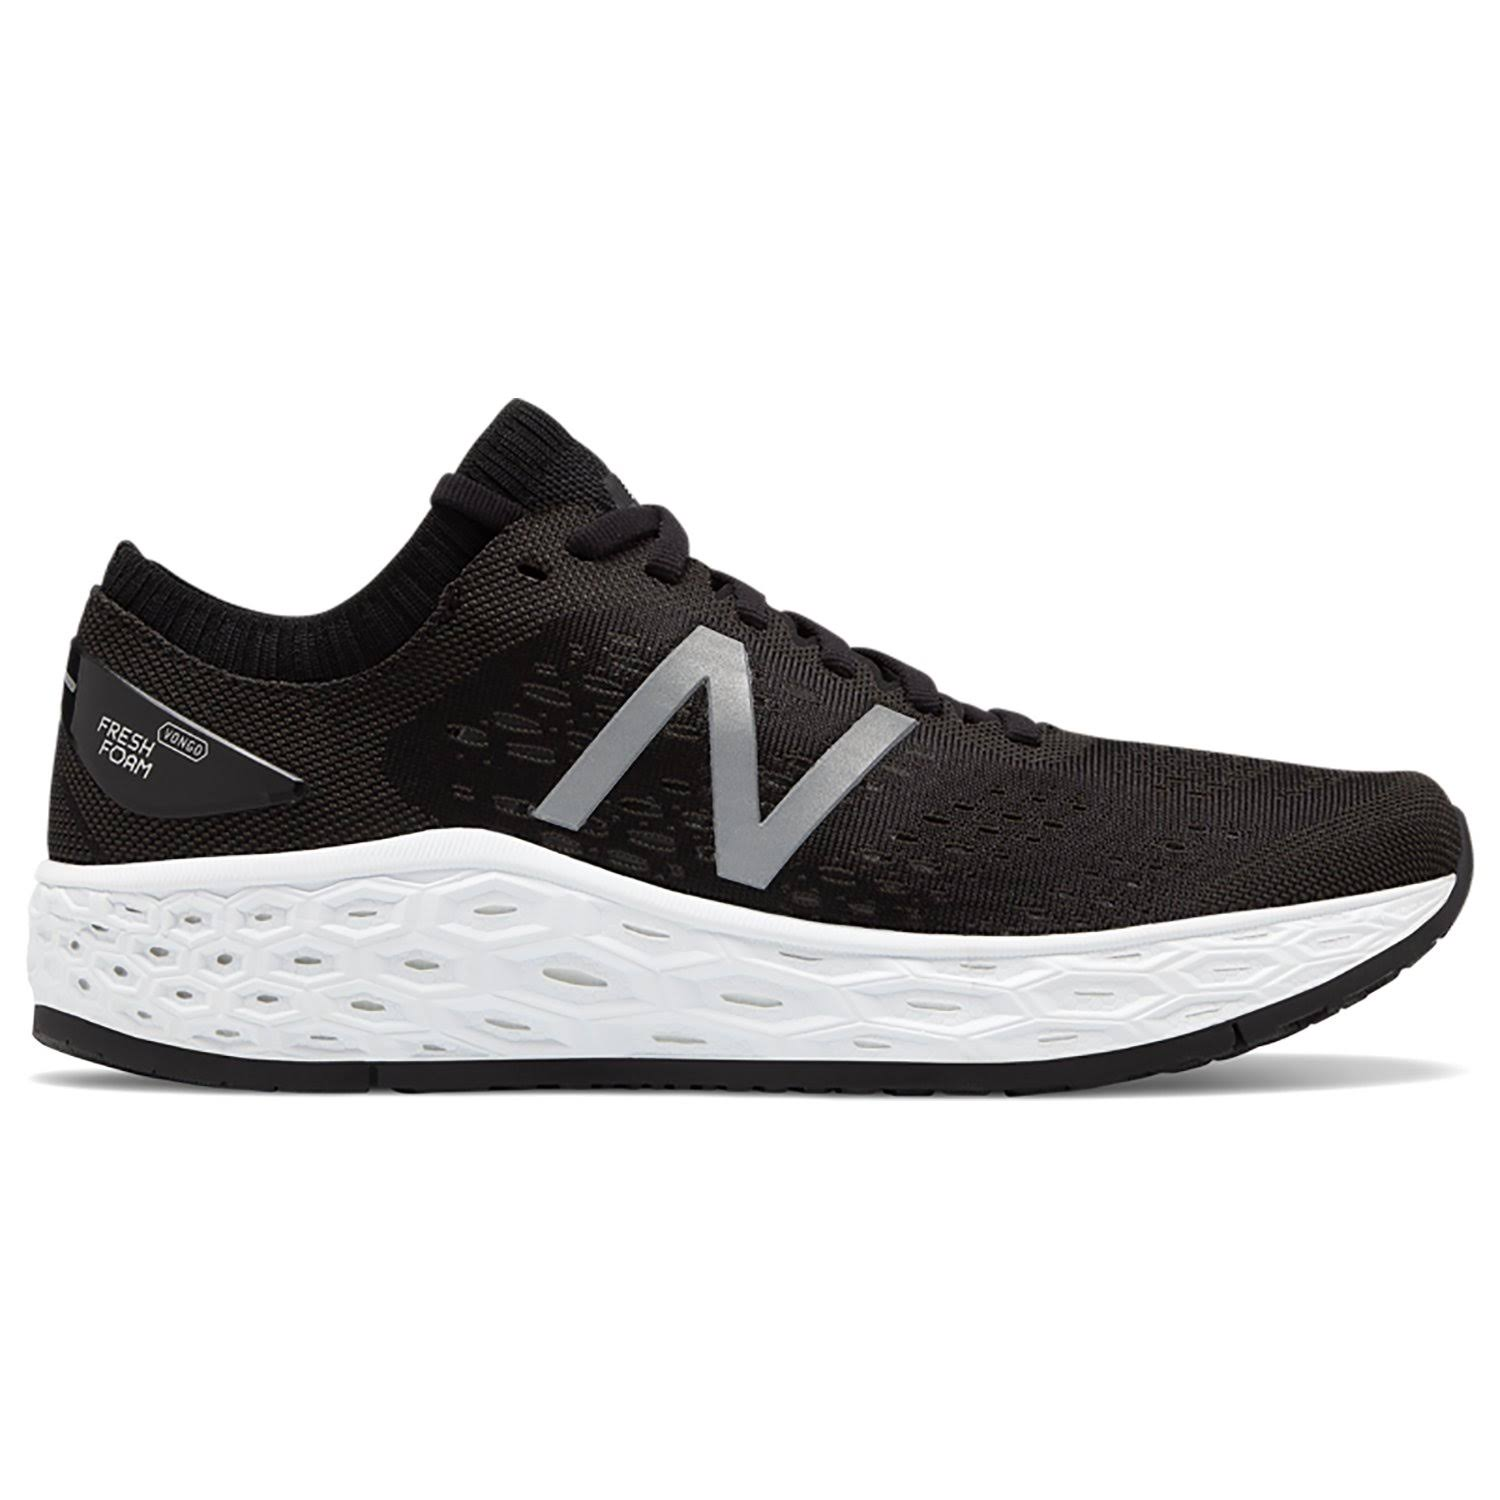 New Balance Fresh Foam Vongo v4 6.5 Women's Black